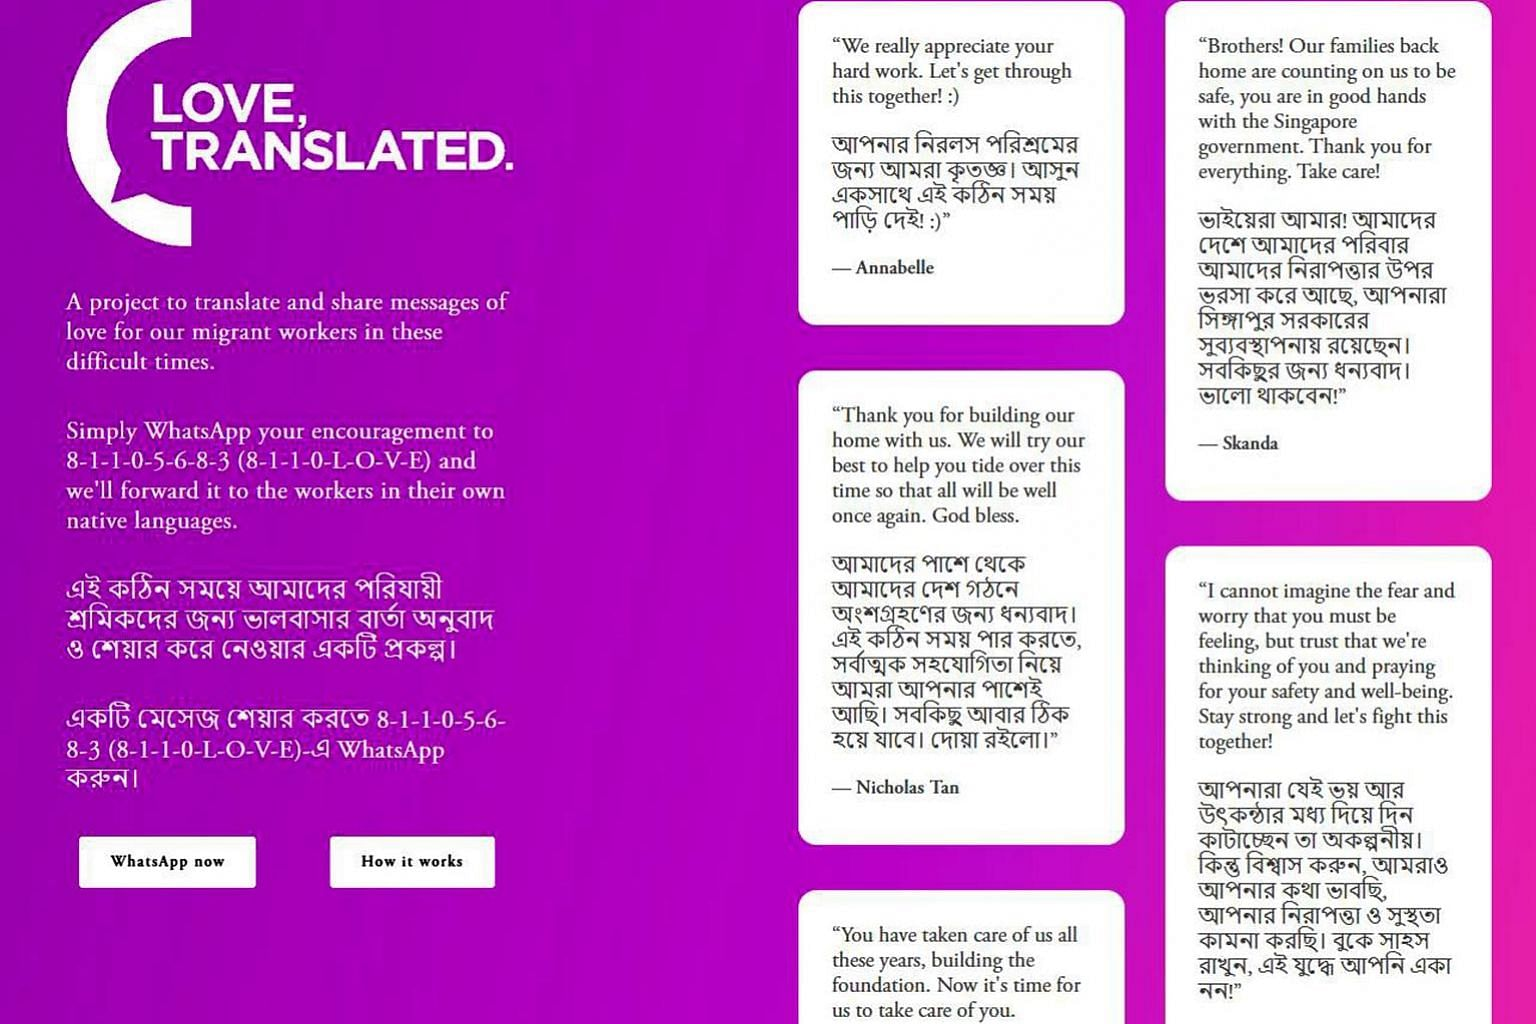 A screenshot from lovetranslated.org showing samples of the messages translated into Bengali, the official language of Bangladesh. Messages of support can be sent via WhatsApp to 8110-5683 (8110-LOVE).